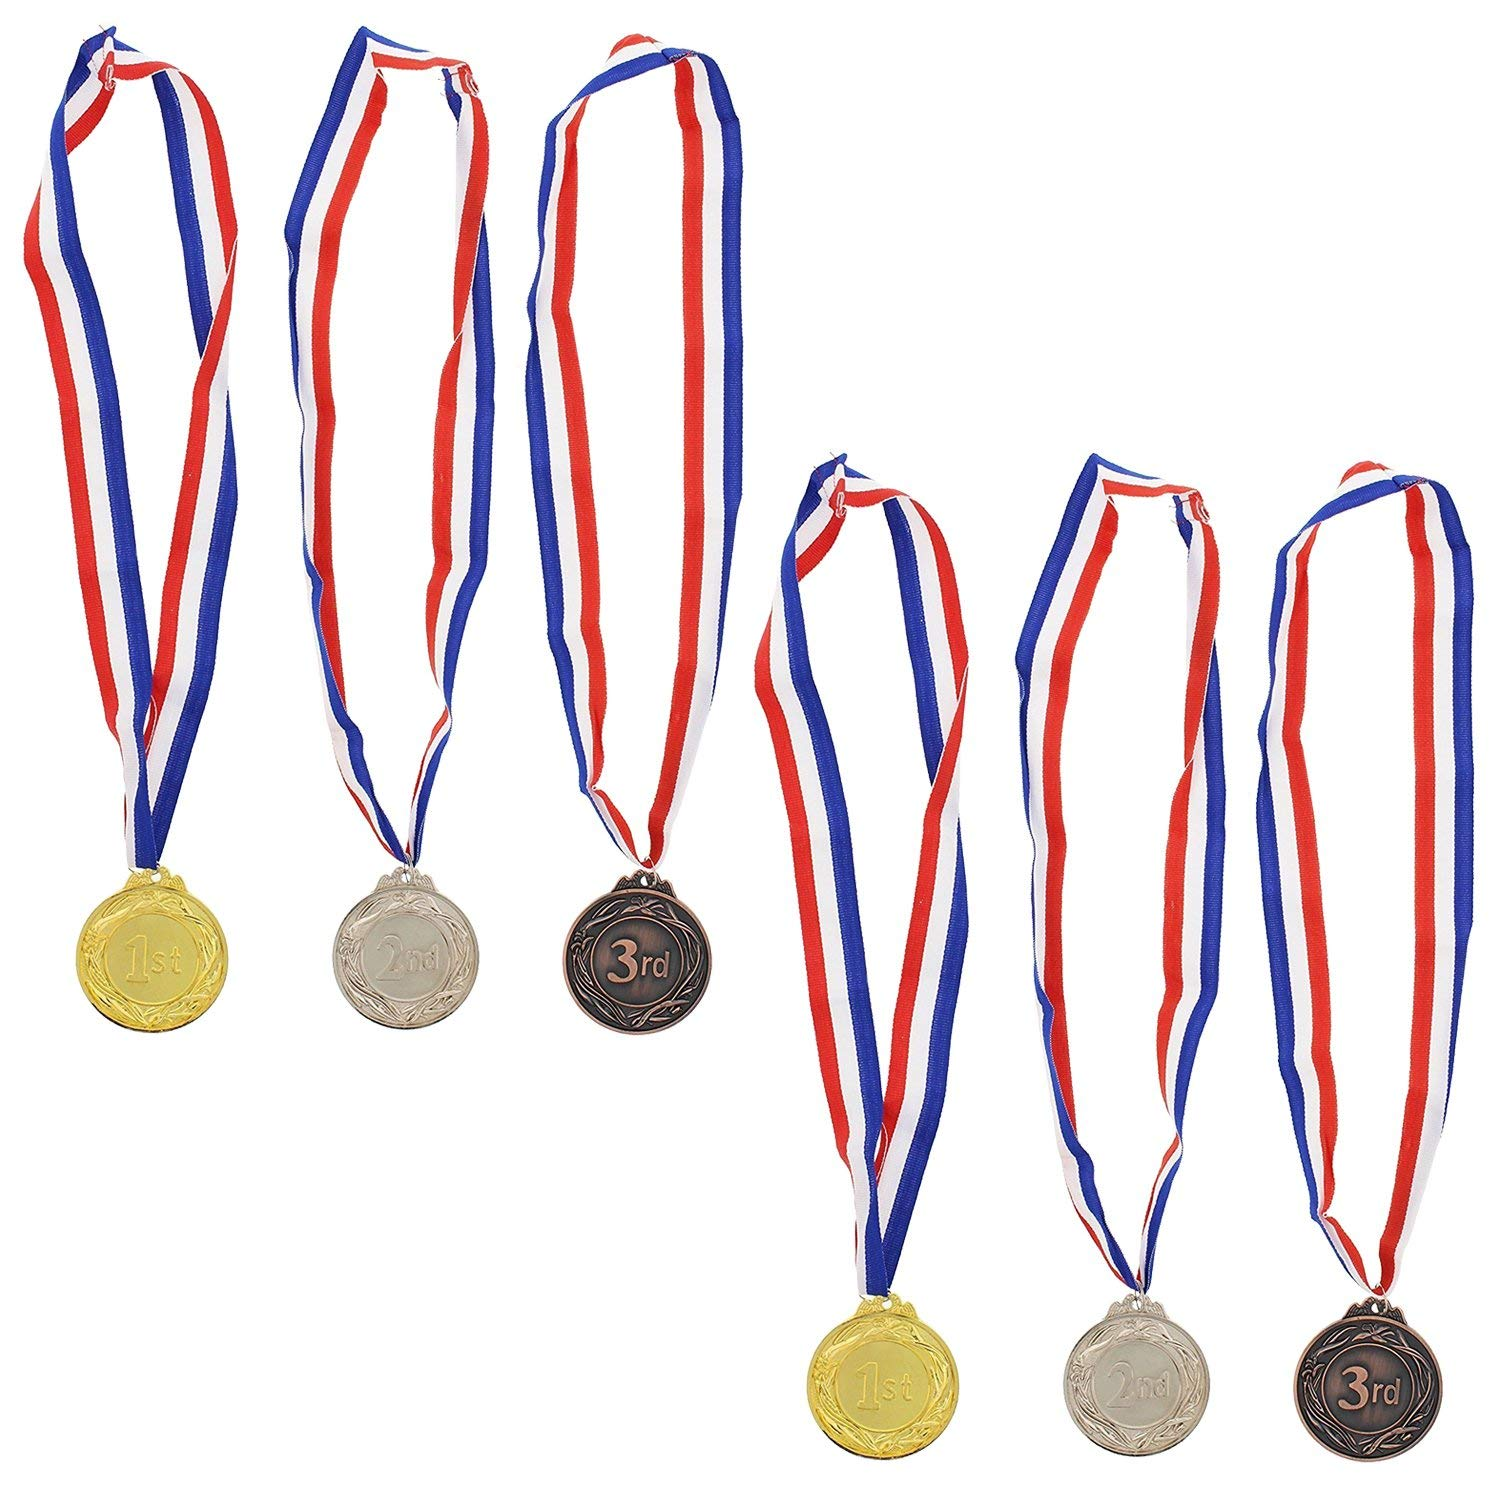 Frienda 6 Pieces Torch Style Gold Sliver Bronze Metal Medals Winner Award Medals Prizes for Competitions Party